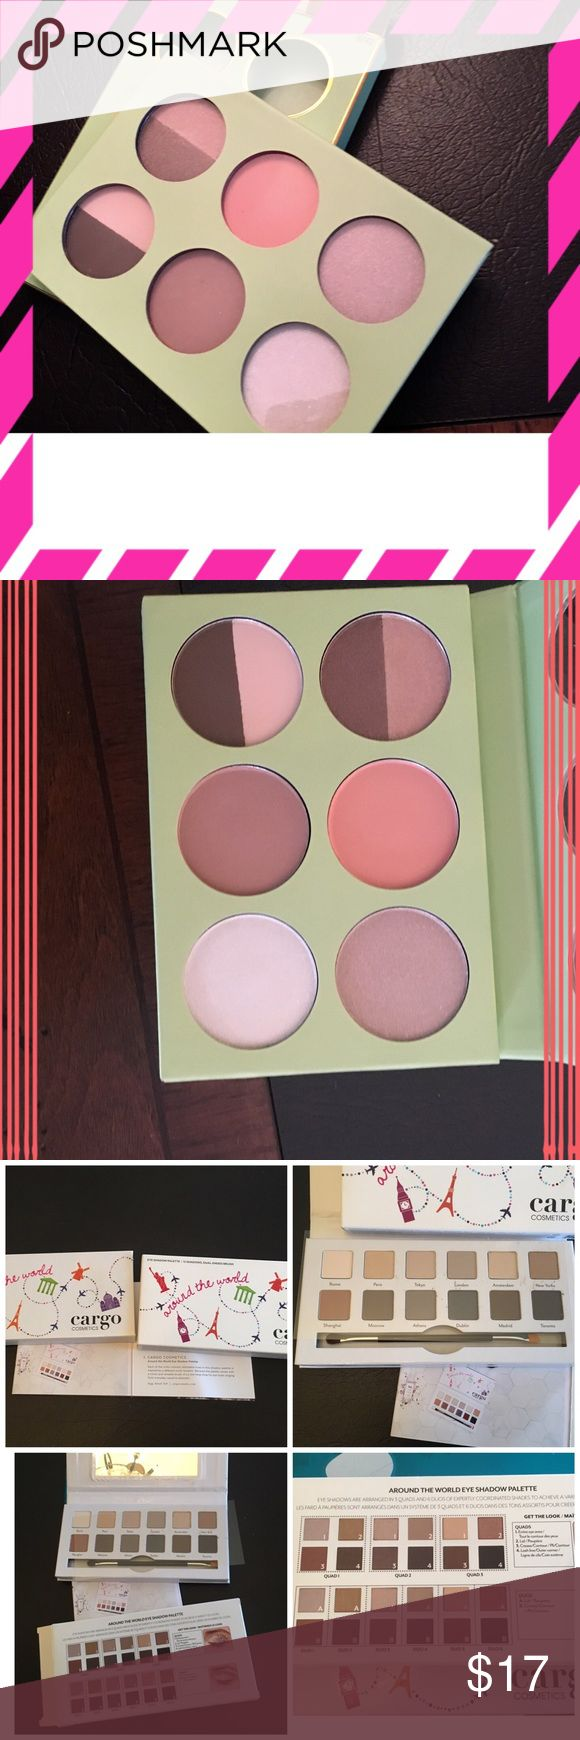 "Book of Beauty Minimal Makeup Pixie by Petra book of Beauty- complete with 2 highlighters, 2 cheek tints, and 4 eye shadows, this sophisticated beauty kit is your new secret weapon for creating the perfect ""no makeup"" look. It's luminous barely there hues will subtly enhance your natural glow, eliminating the guesswork from your daily beauty routine. Pixi Makeup"